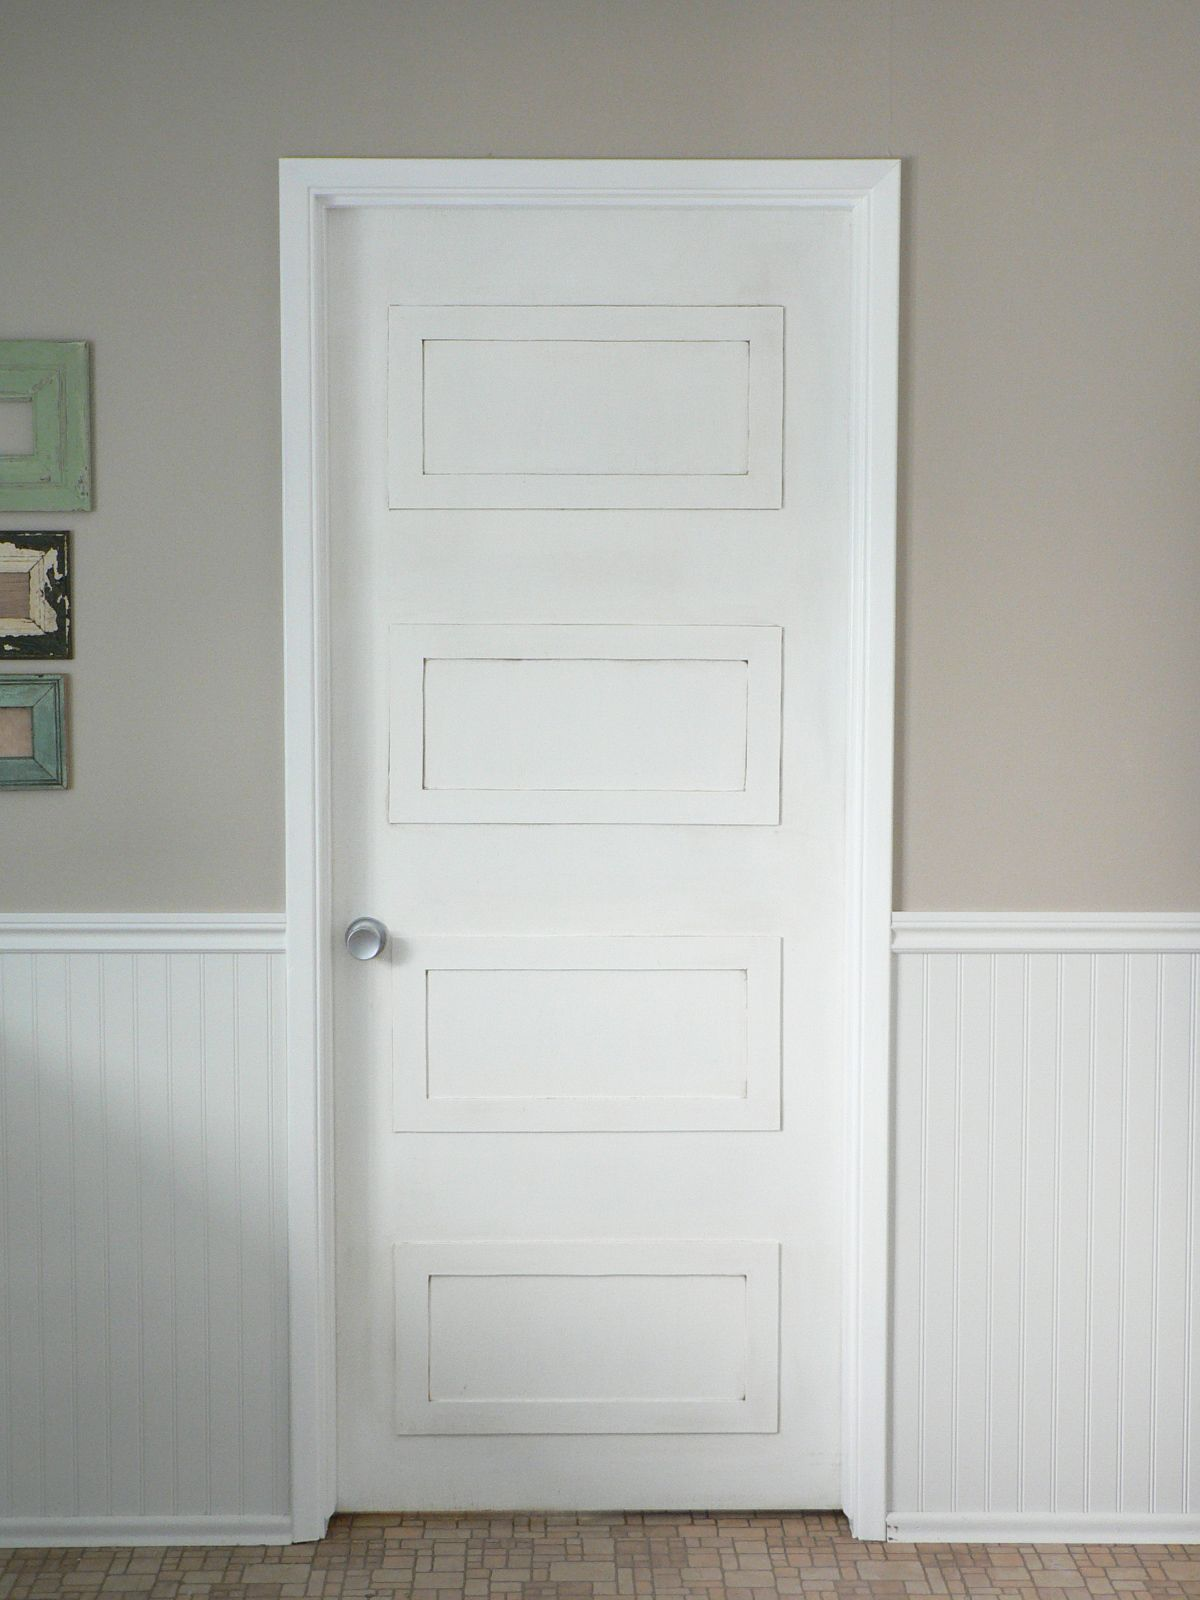 4 Rectangle Paneled Door Diy Update For The Love Of It